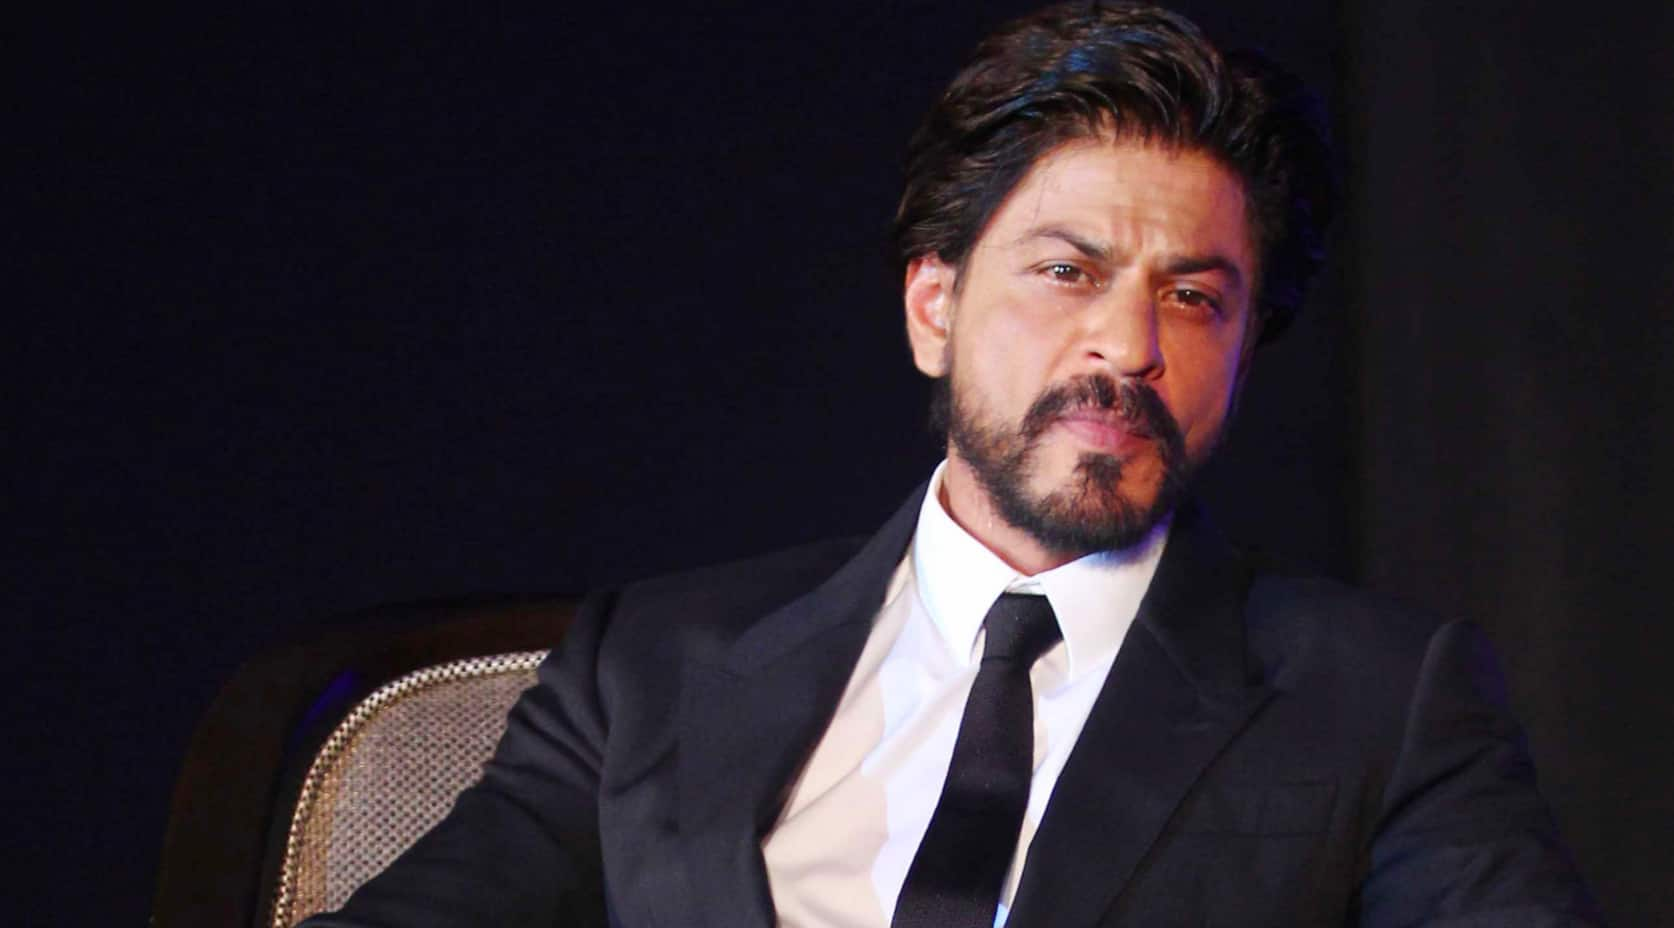 Someone asked Shah Rukh Khan how many times he poops. Here's what he answered